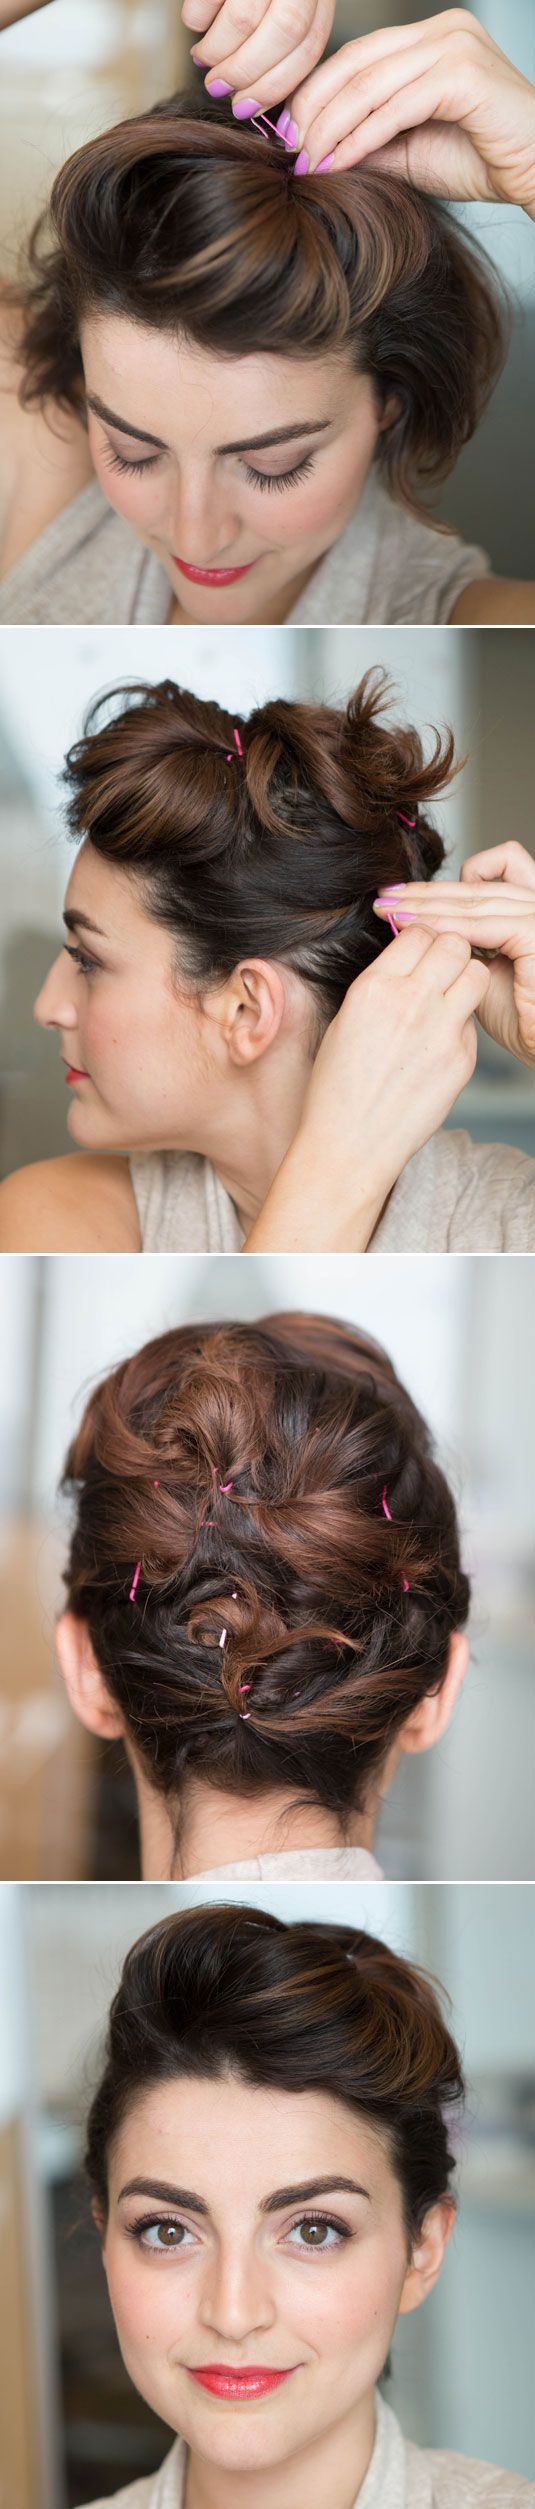 Pinned Updo Hairstyle Tutorial for Short Hair